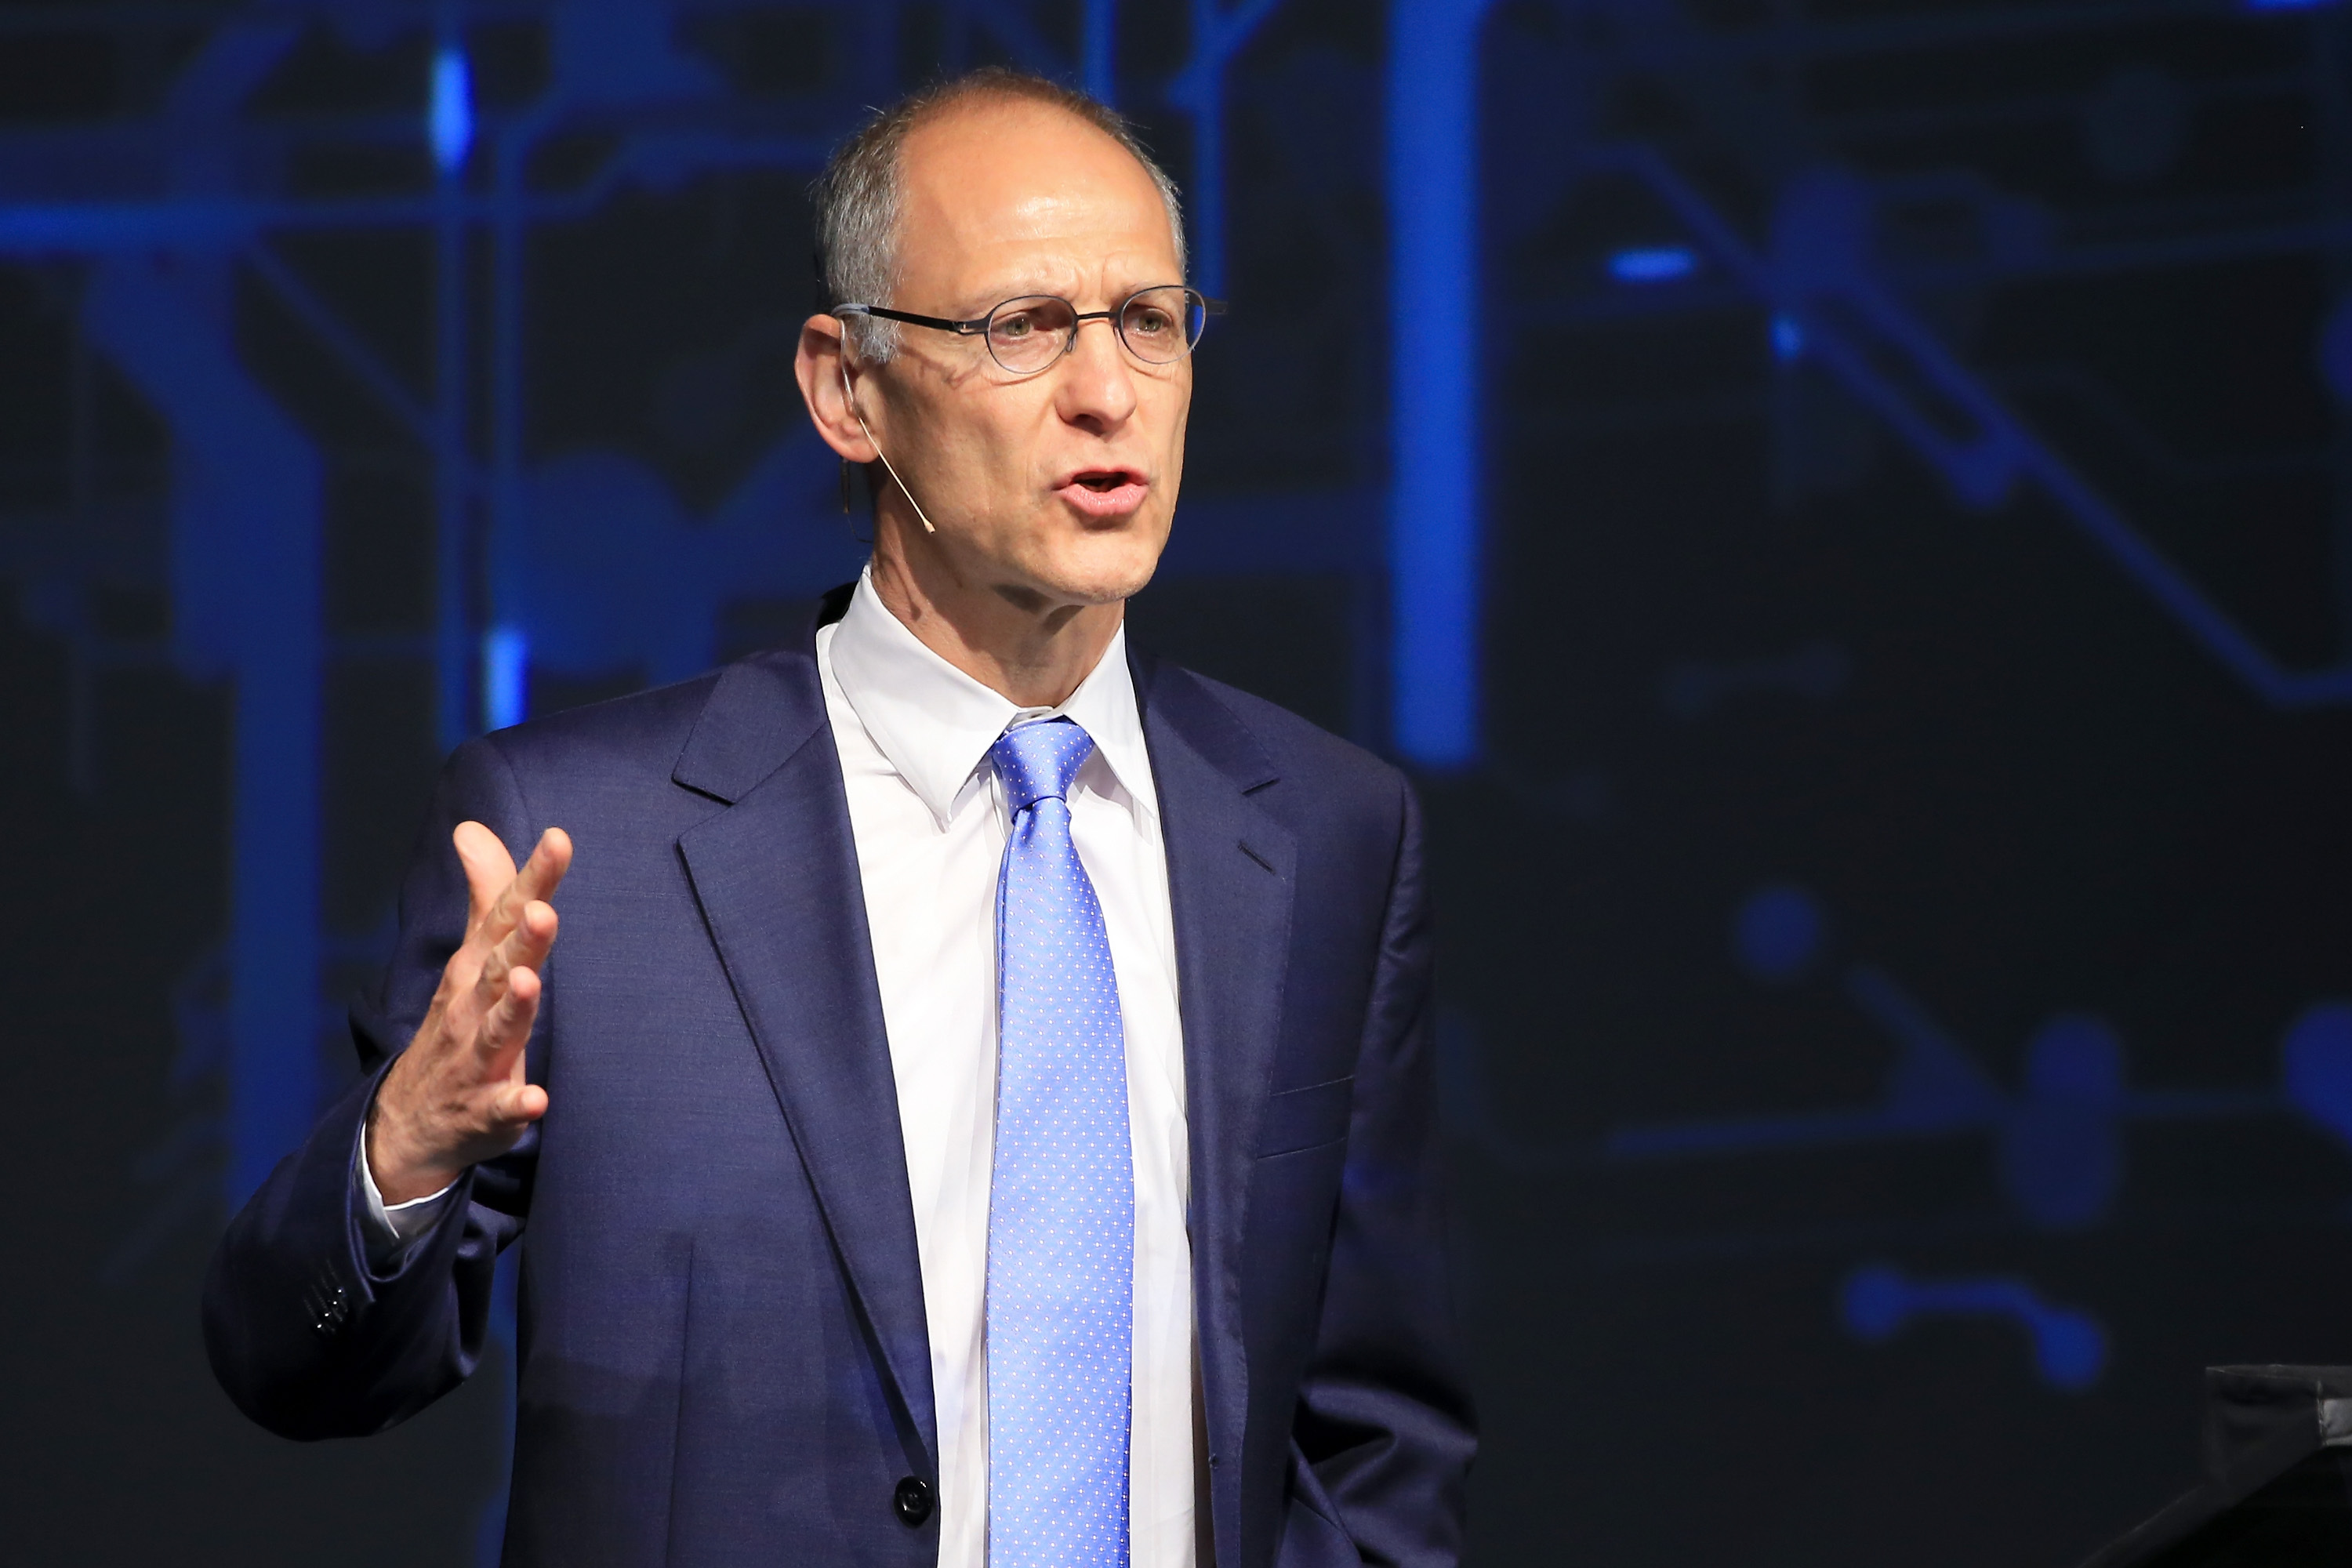 Ezekiel Emanuel speaking on stage at health conference and gesturing with his right hand in a forceful way